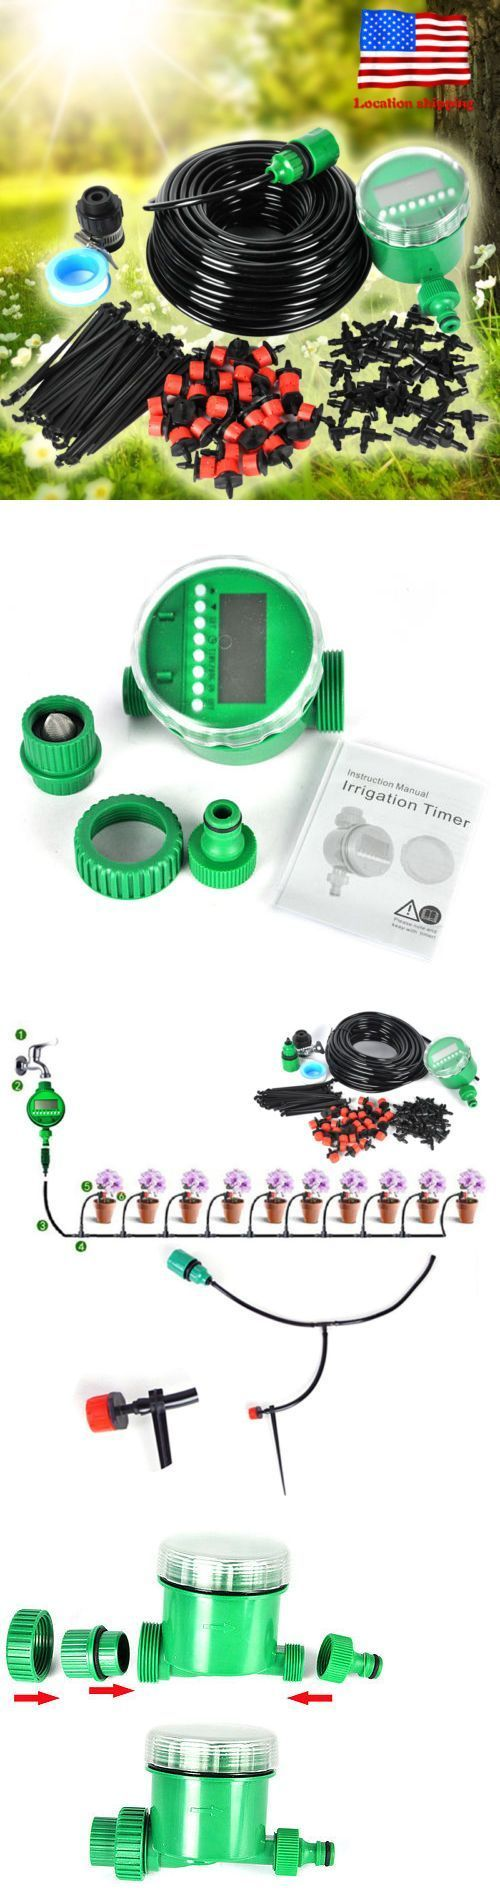 Lawn Sprinklers 20542: 25M Diy Micro Drip Irrigation System Auto Timer Self Plant Watering Garden Hose -> BUY IT NOW ONLY: $33.48 on eBay! #wateringtimer